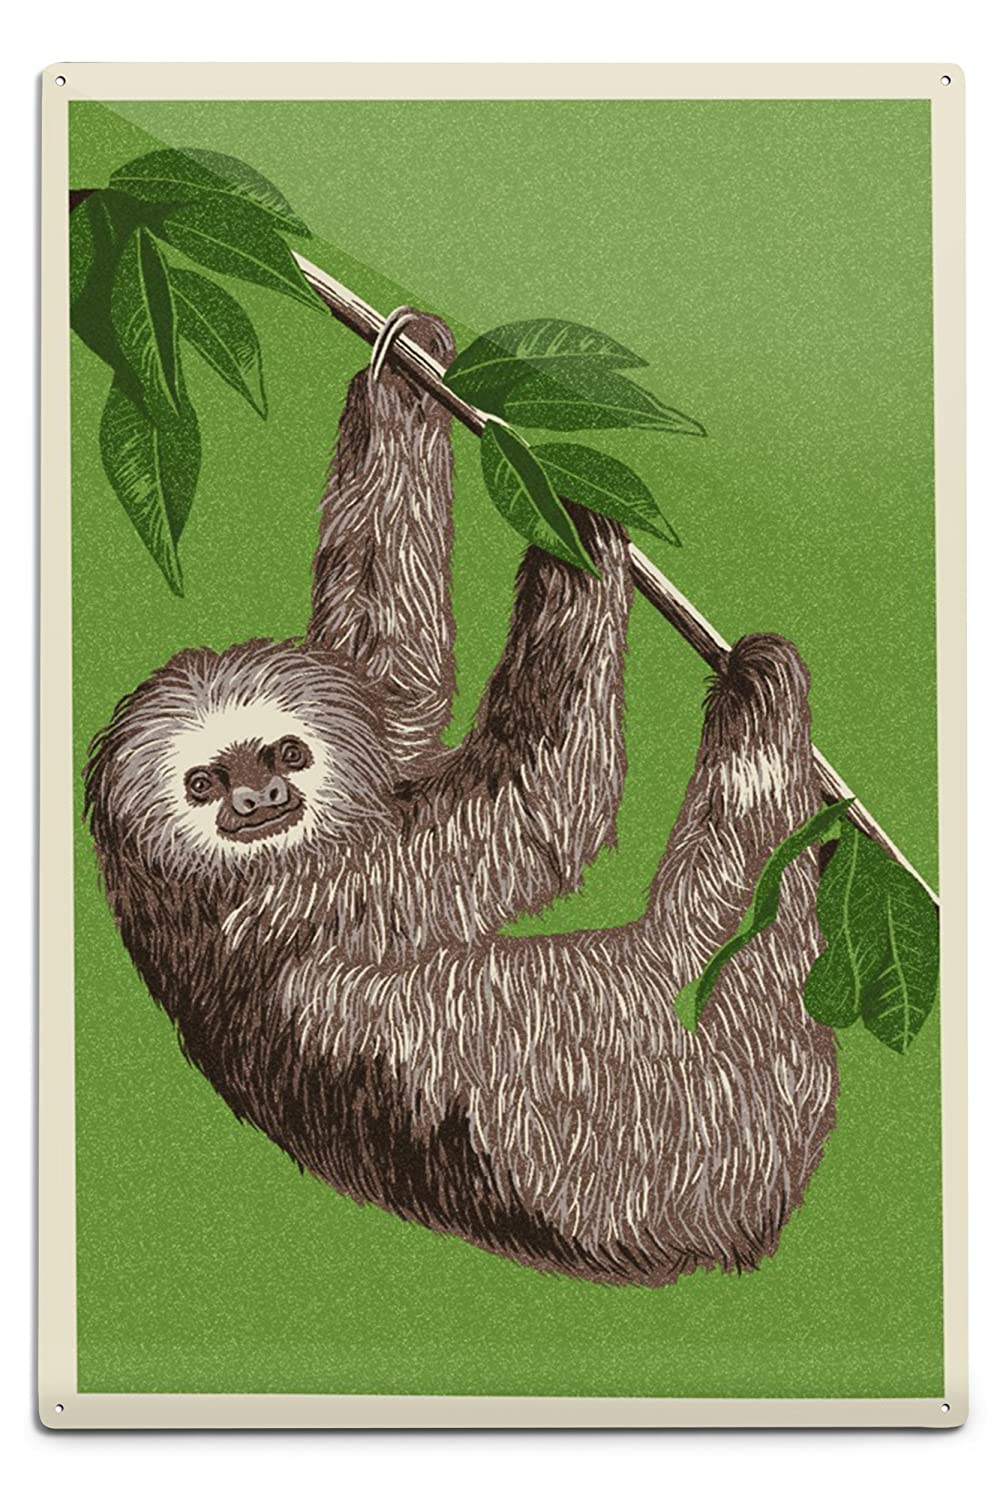 2つToed Sloth – 活版 12 x 18 Metal Sign LANT-66396-12x18M B06Y1FL4LG  12 x 18 Metal Sign